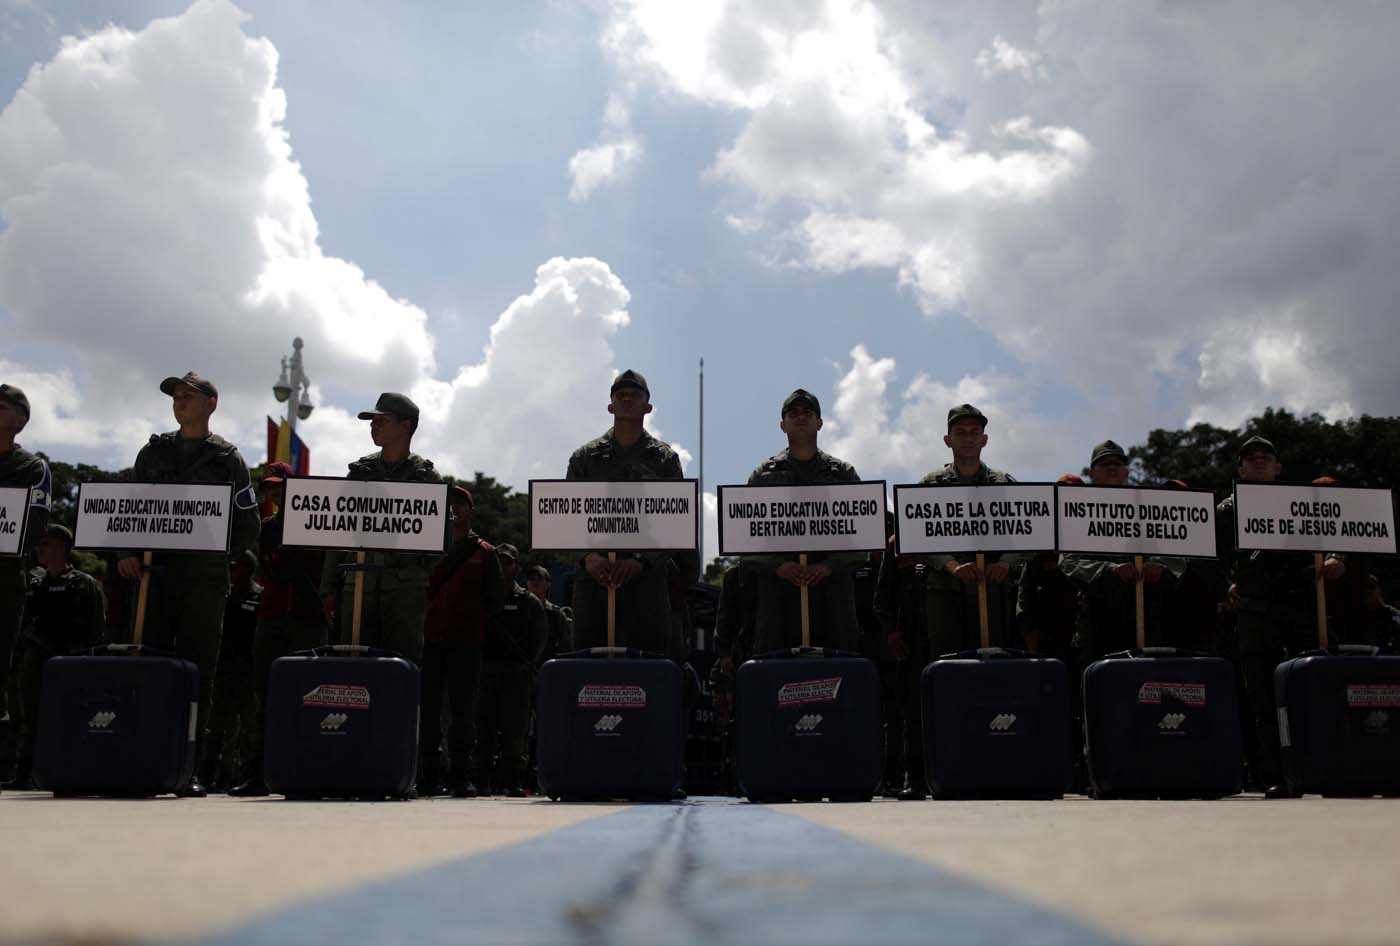 Venezuela's soldiers stand with cases of voting materials during a ceremony ahead of the regional elections which will be held on October 15, in Caracas, Venezuela, October 9, 2017.  REUTERS/Ricardo Moraes